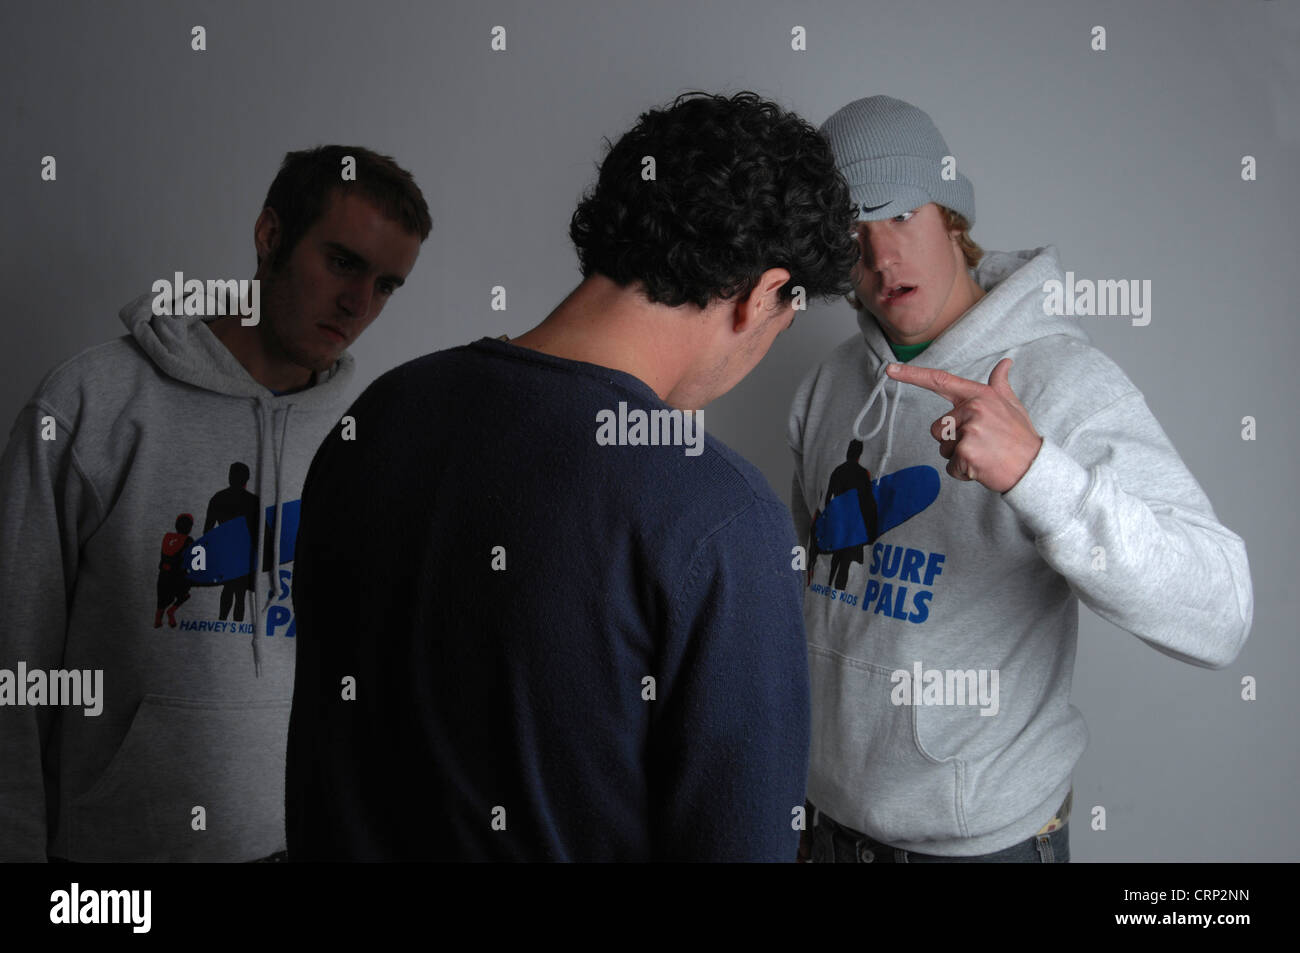 Two angry men confront a young male. - Stock Image